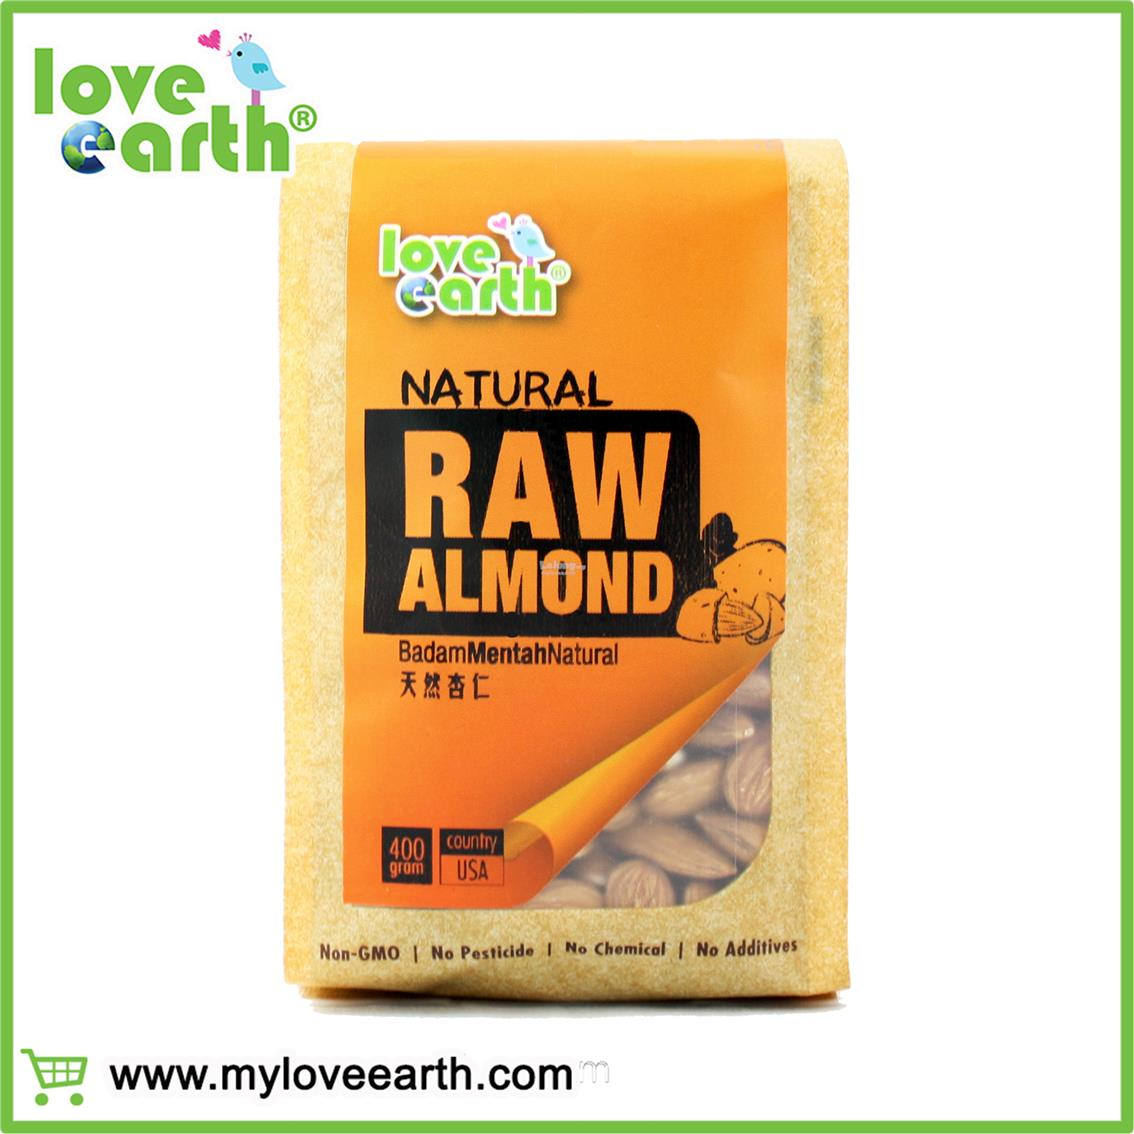 LOVE EARTH NATURAL RAW ALMOND 400G